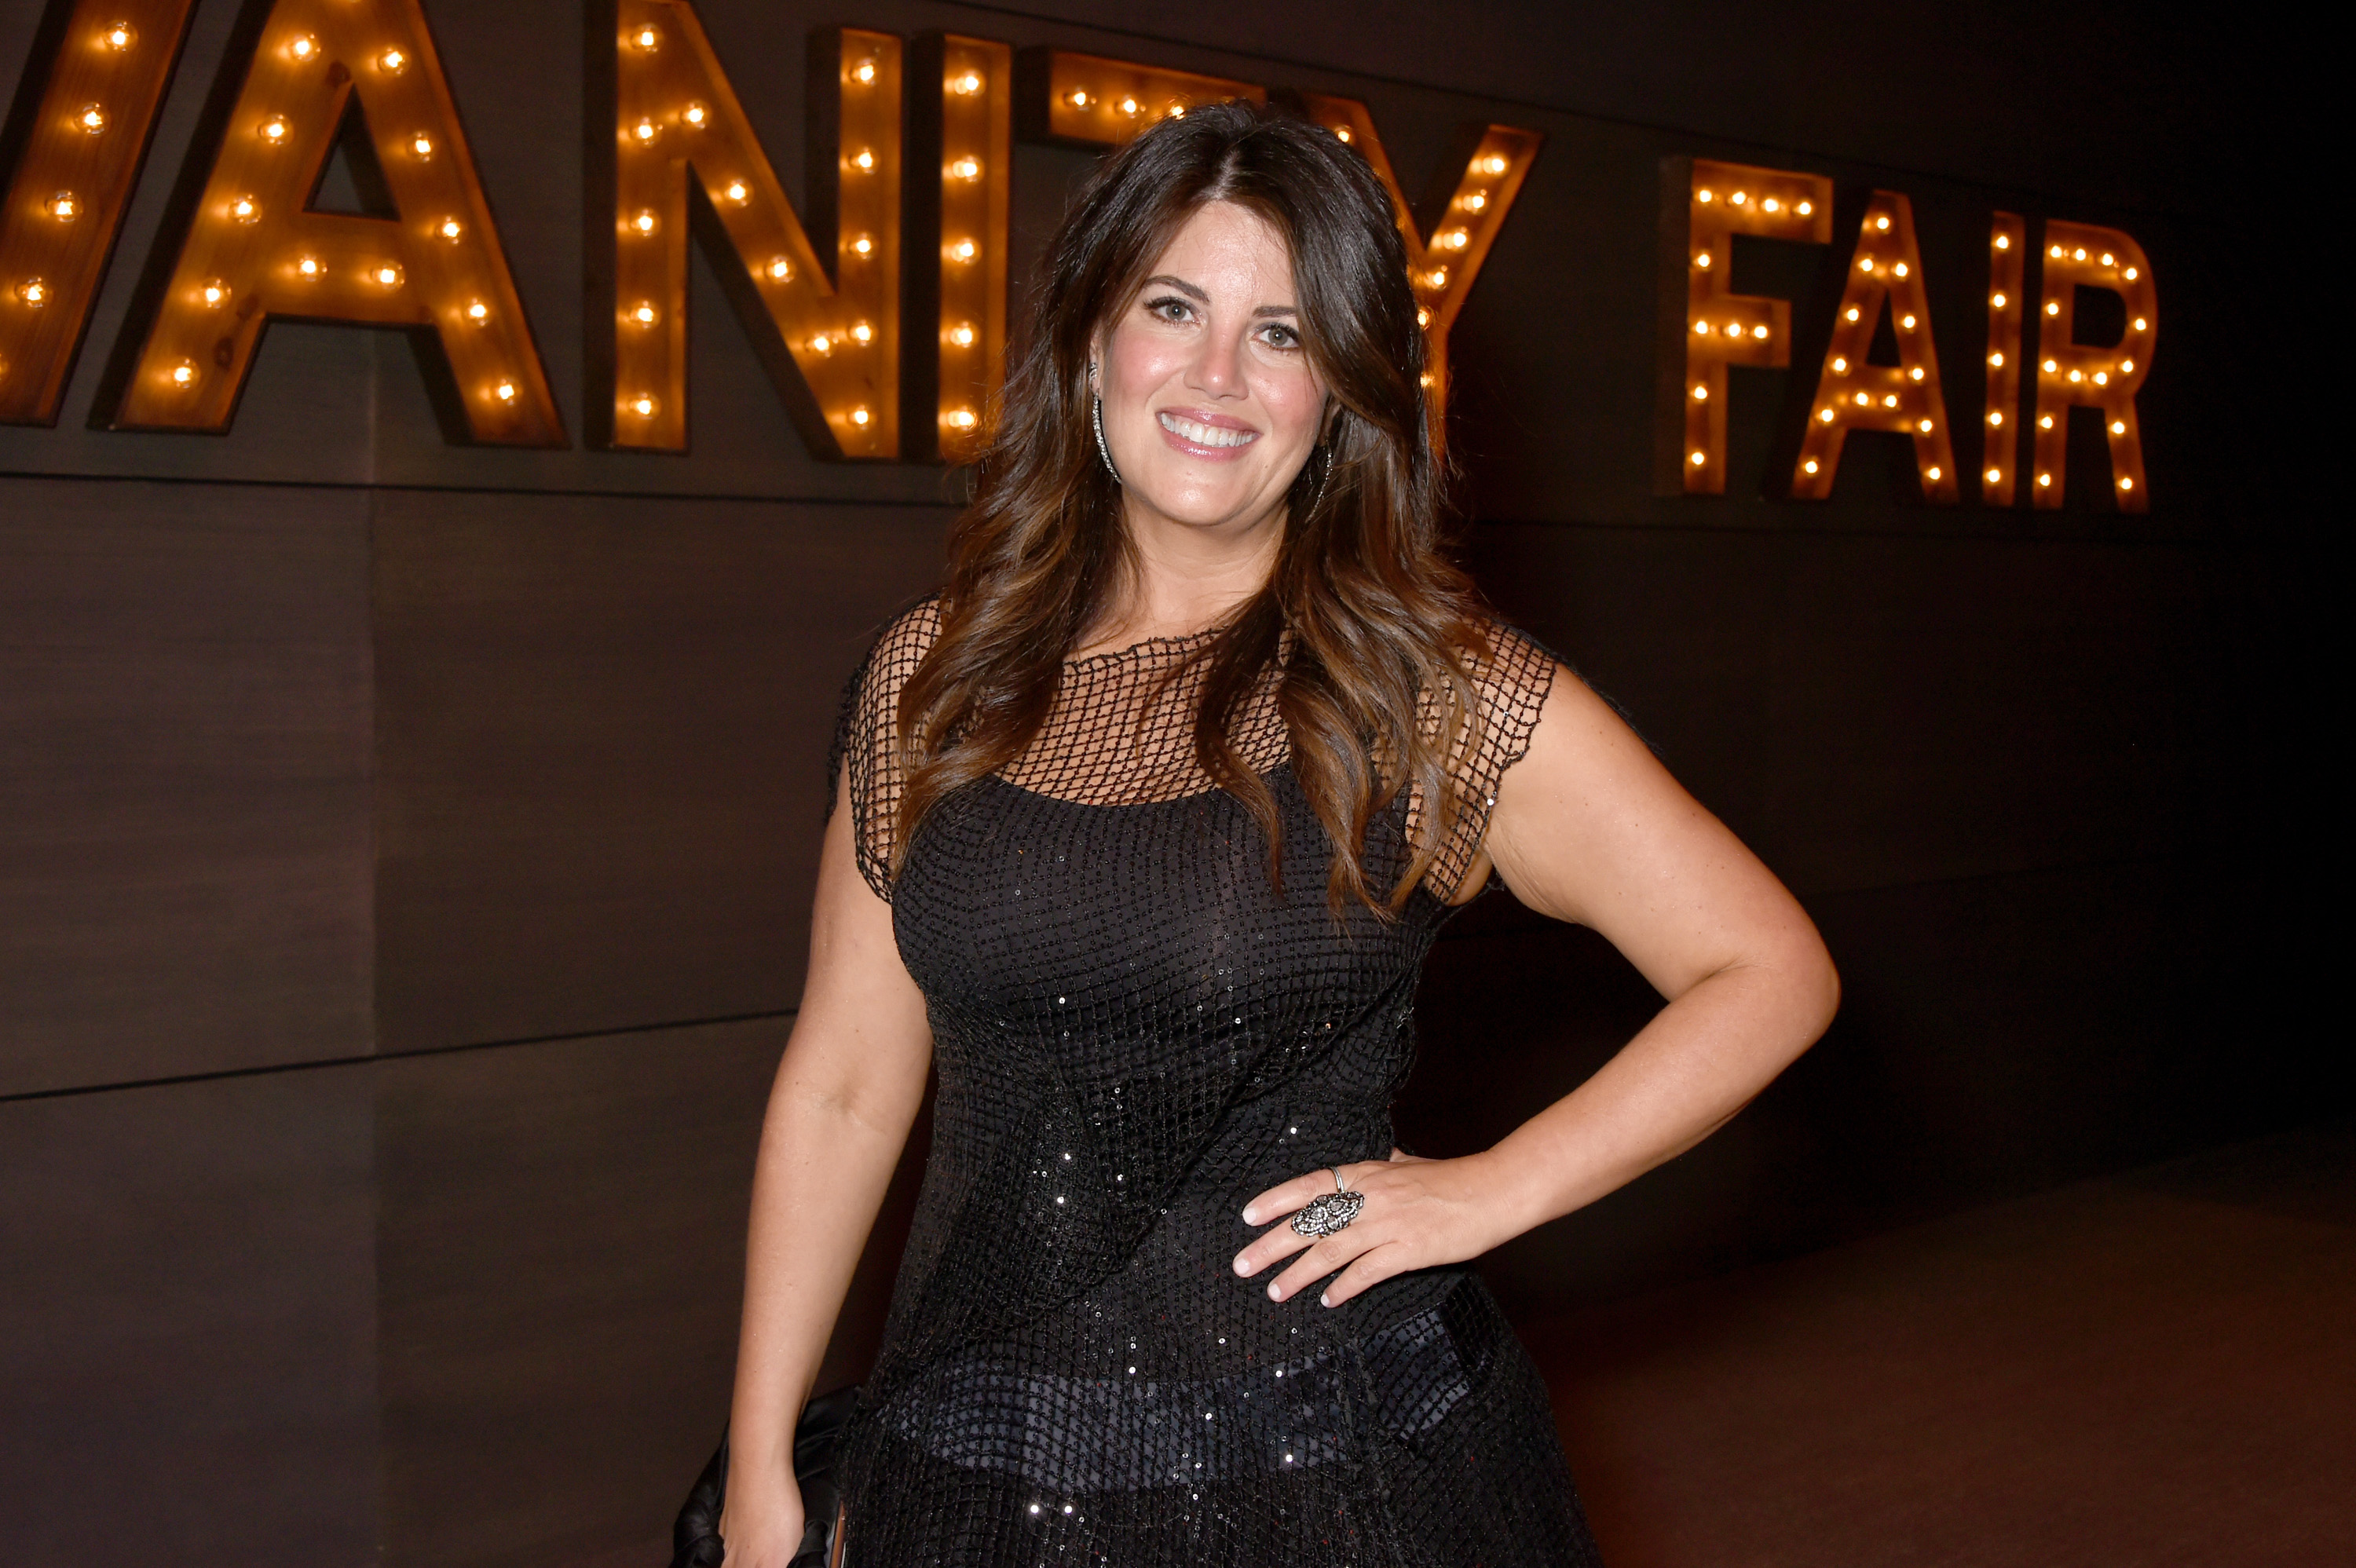 Writer Monica Lewinsky attends the 2017 Vanity Fair Oscar Party hosted by Graydon Carter at Wallis Annenberg Center for the Performing Arts on February 26, 2017 in Beverly Hills, California. (Photo by Dave M. Benett/VF17/WireImage)